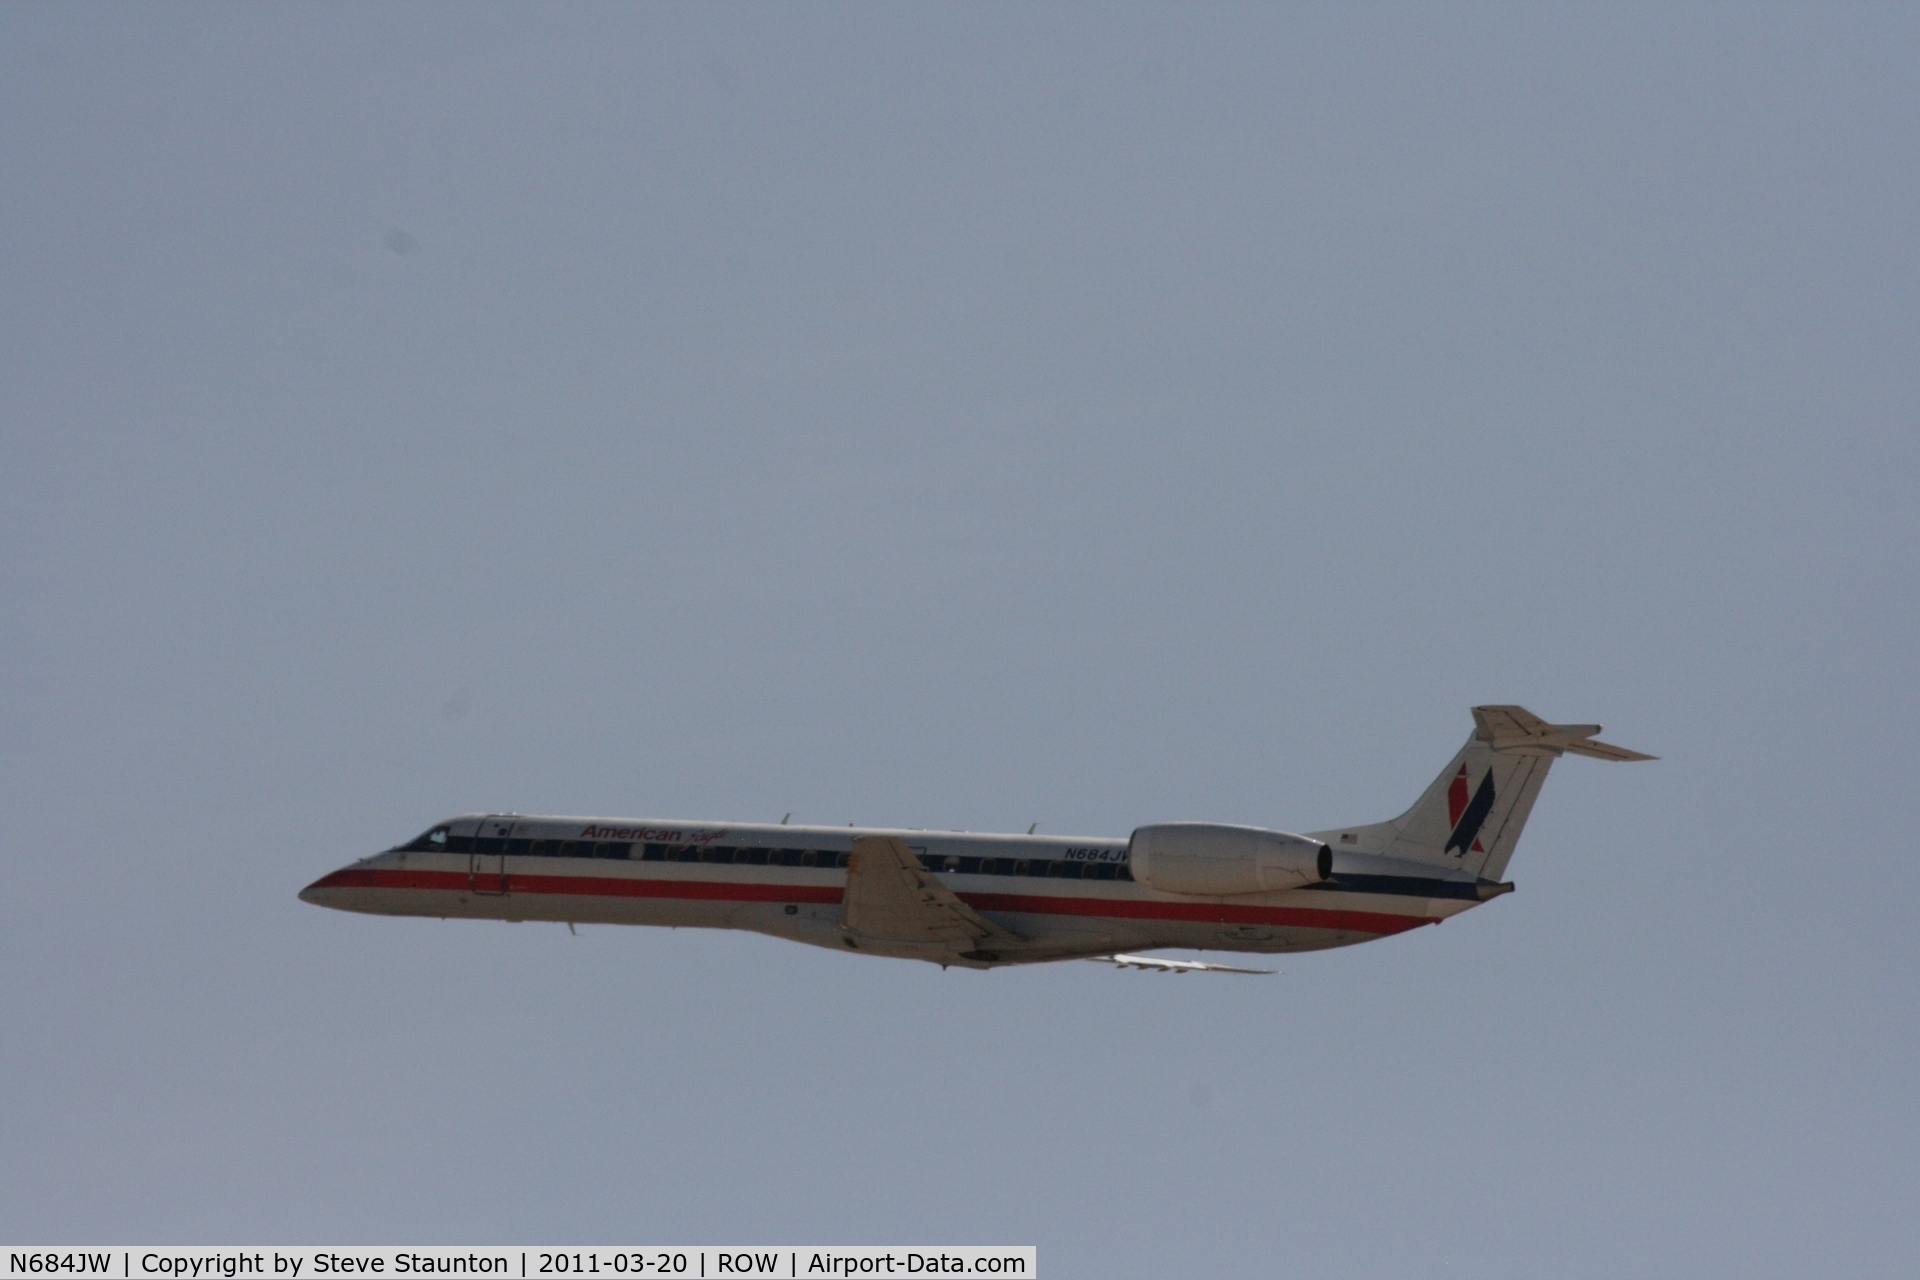 N684JW, 2004 Embraer ERJ-145LR (EMB-145LR) C/N 14500835, Taken at Roswell International Air Centre Storage Facility, New Mexico in March 2011 whilst on an Aeroprint Aviation tour